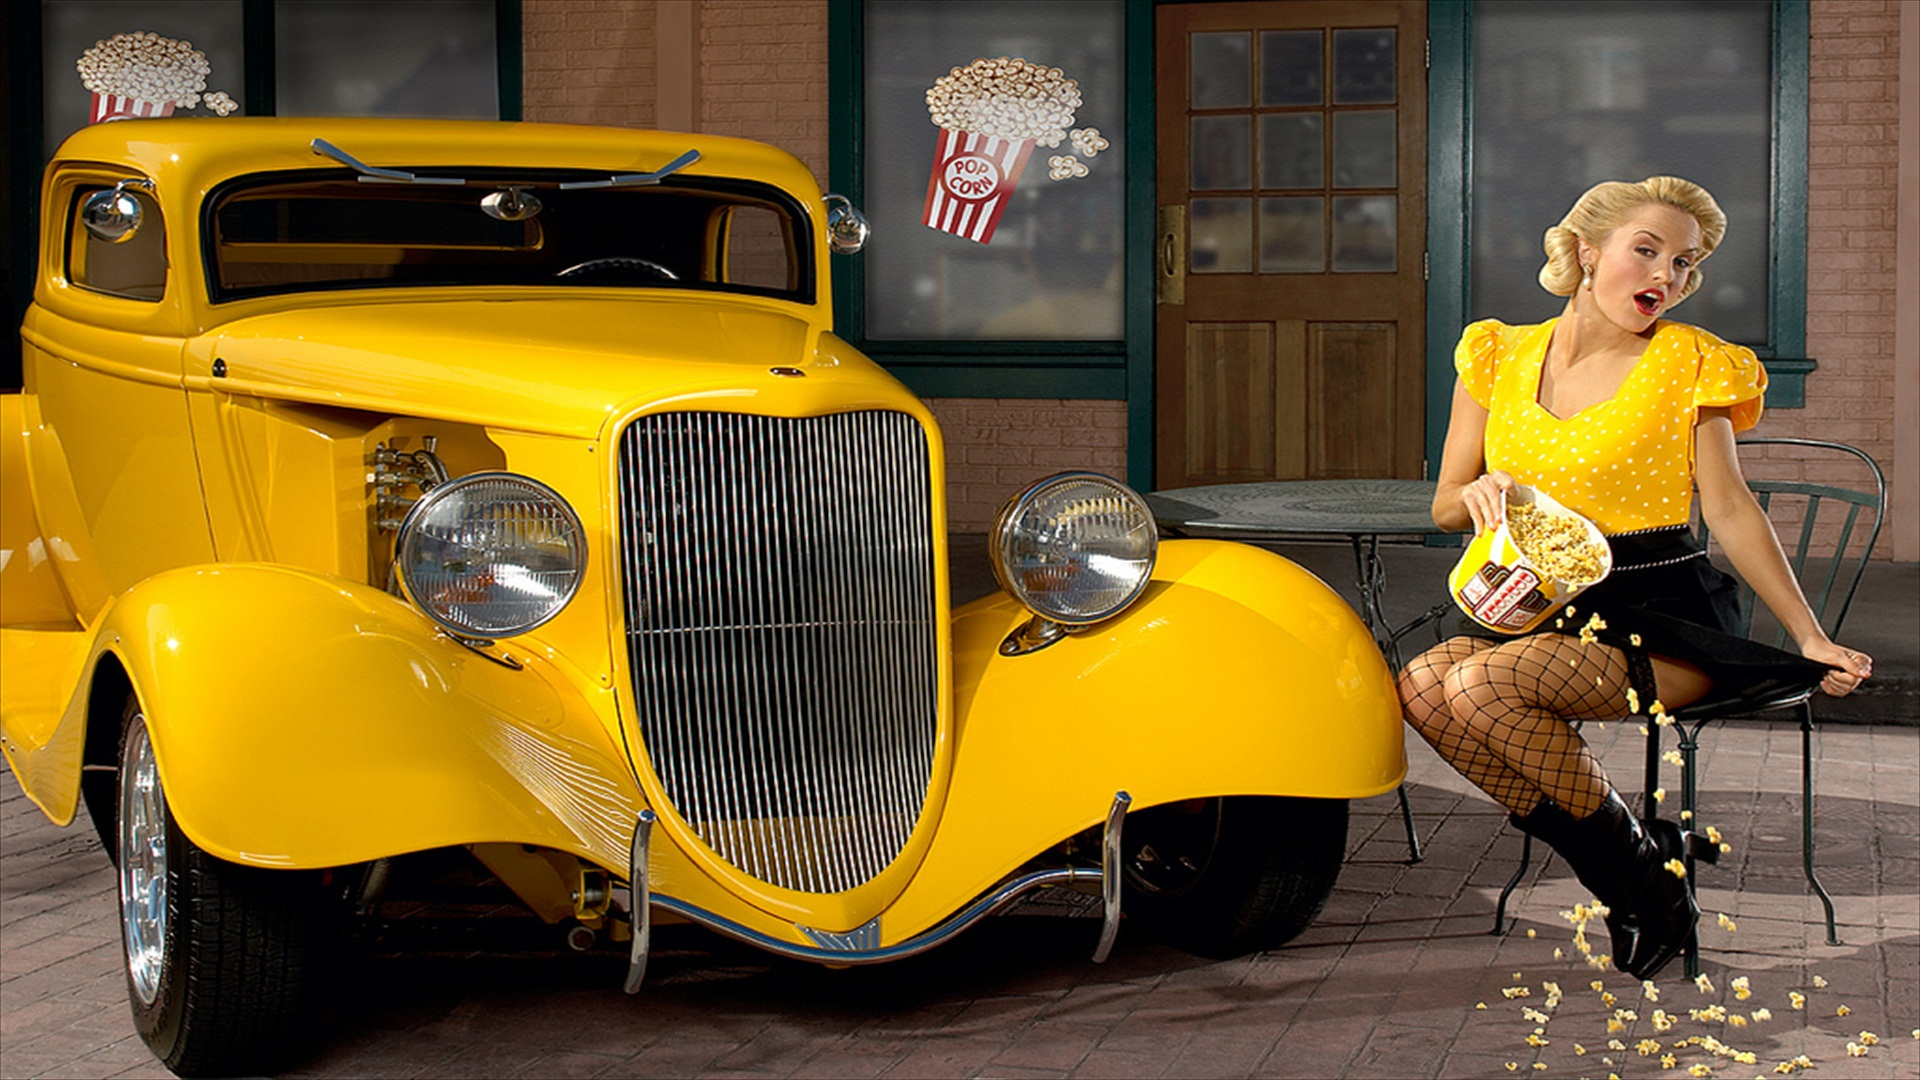 Girls  Cars Full HD Wallpaper and Background Image  1920x1080  ID:183212